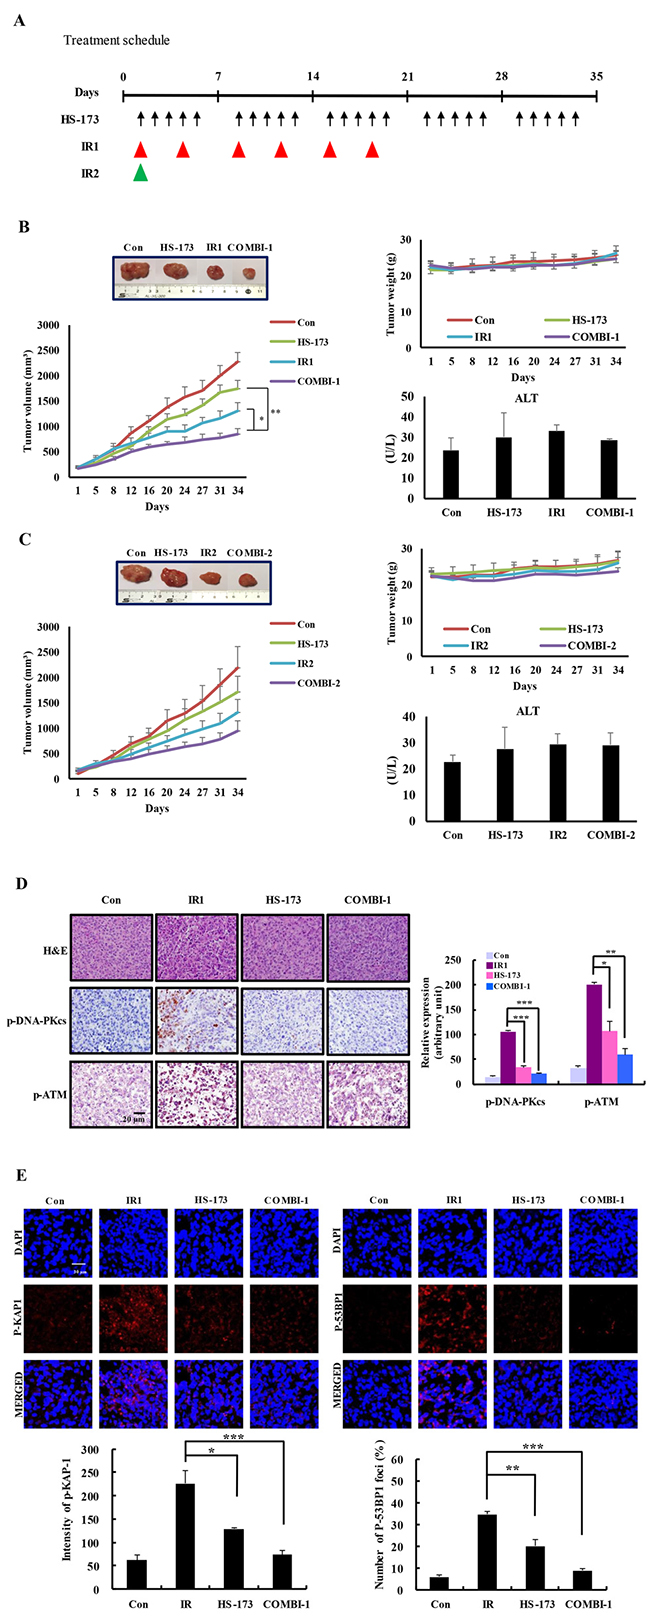 HS-173 inhibits tumor growth and DNA repair responses, thereby inducing radiosensitization in irradiated xenograft models.